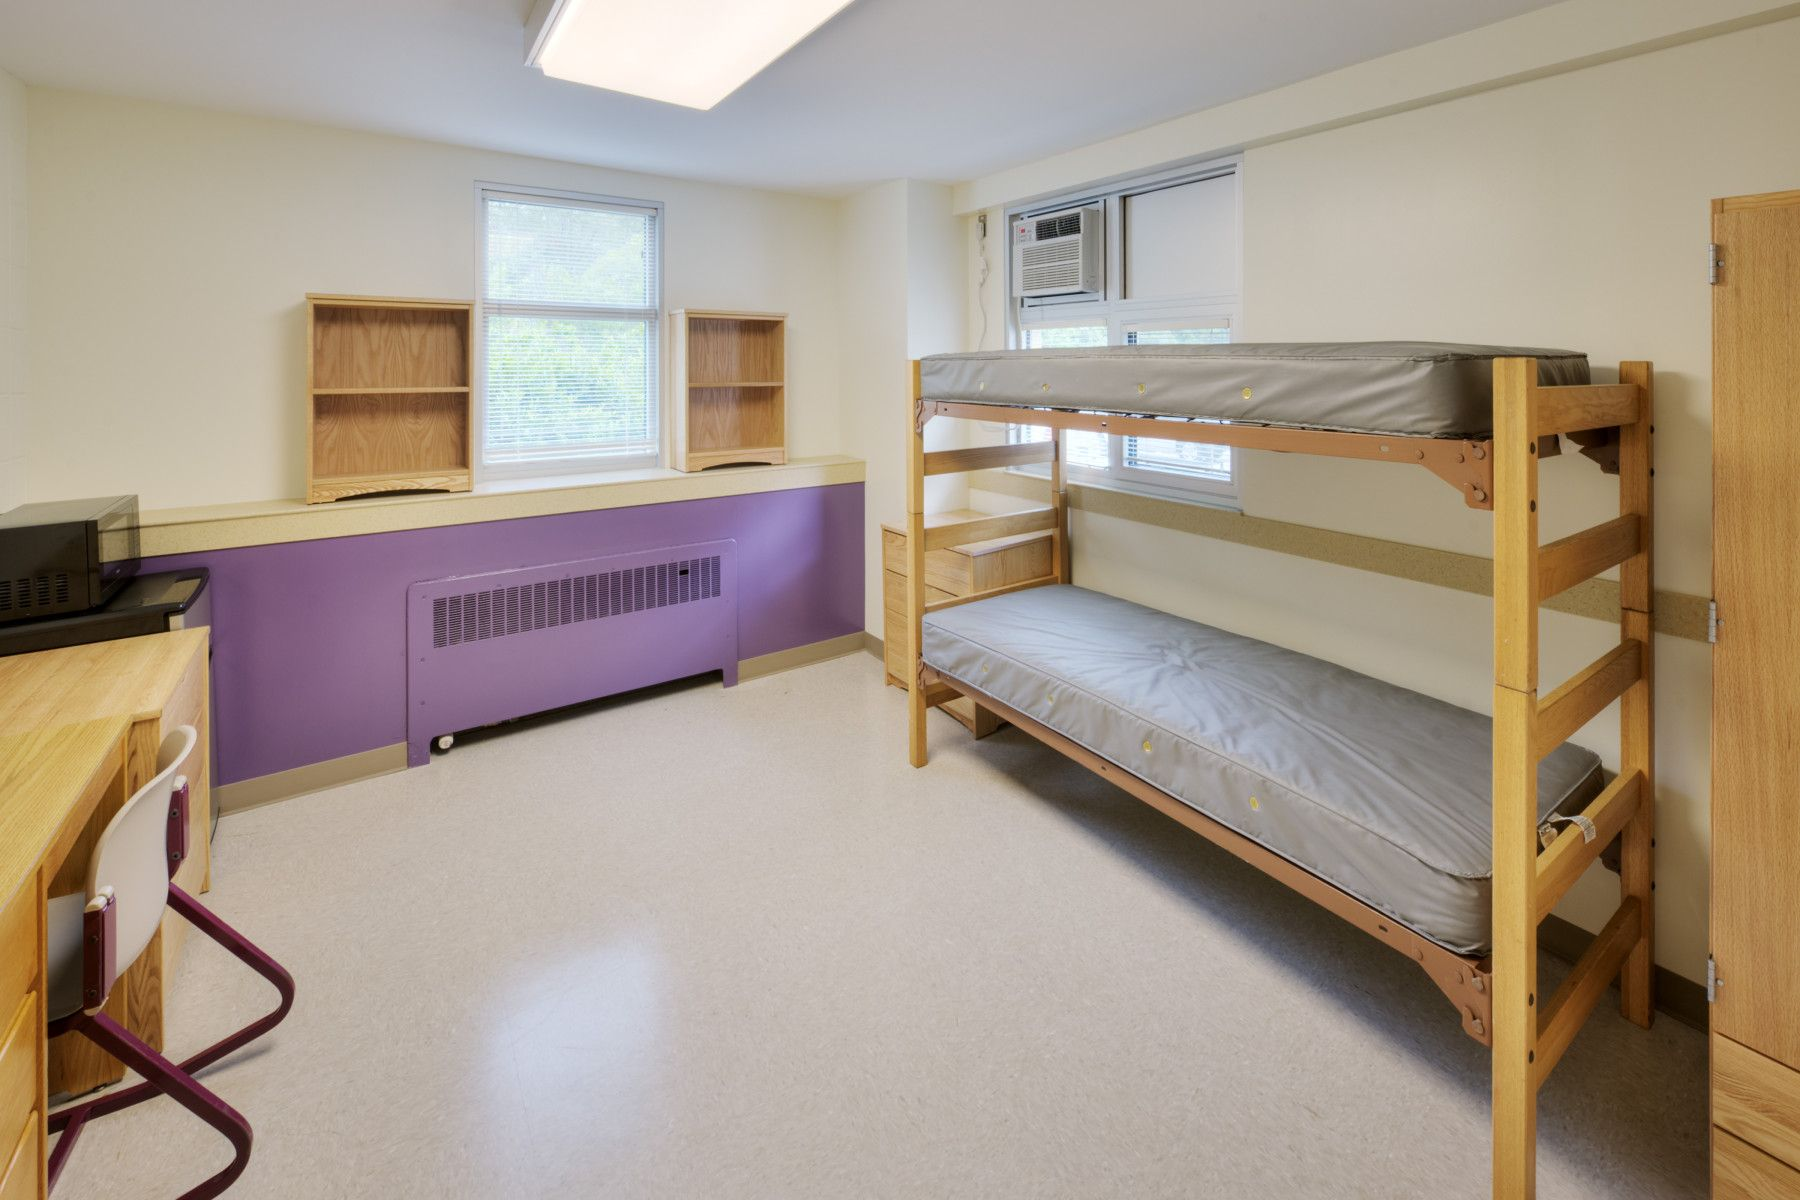 East Carolina University And Dorm Room Bing Images East Carolina